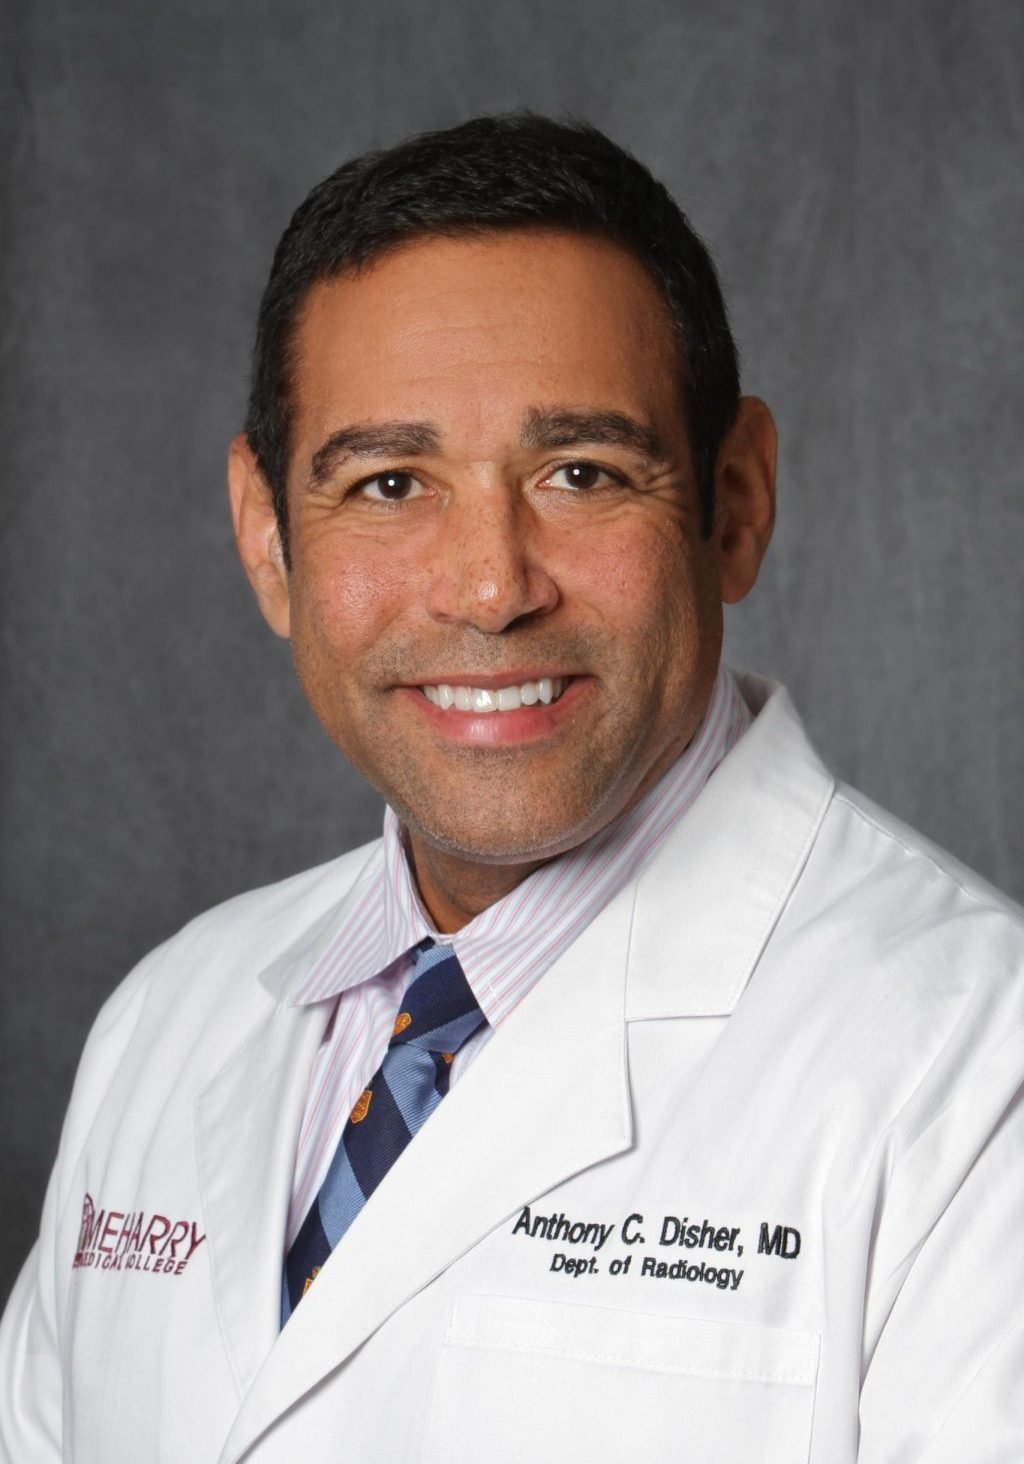 Dr. Anthony C. Disher_0566